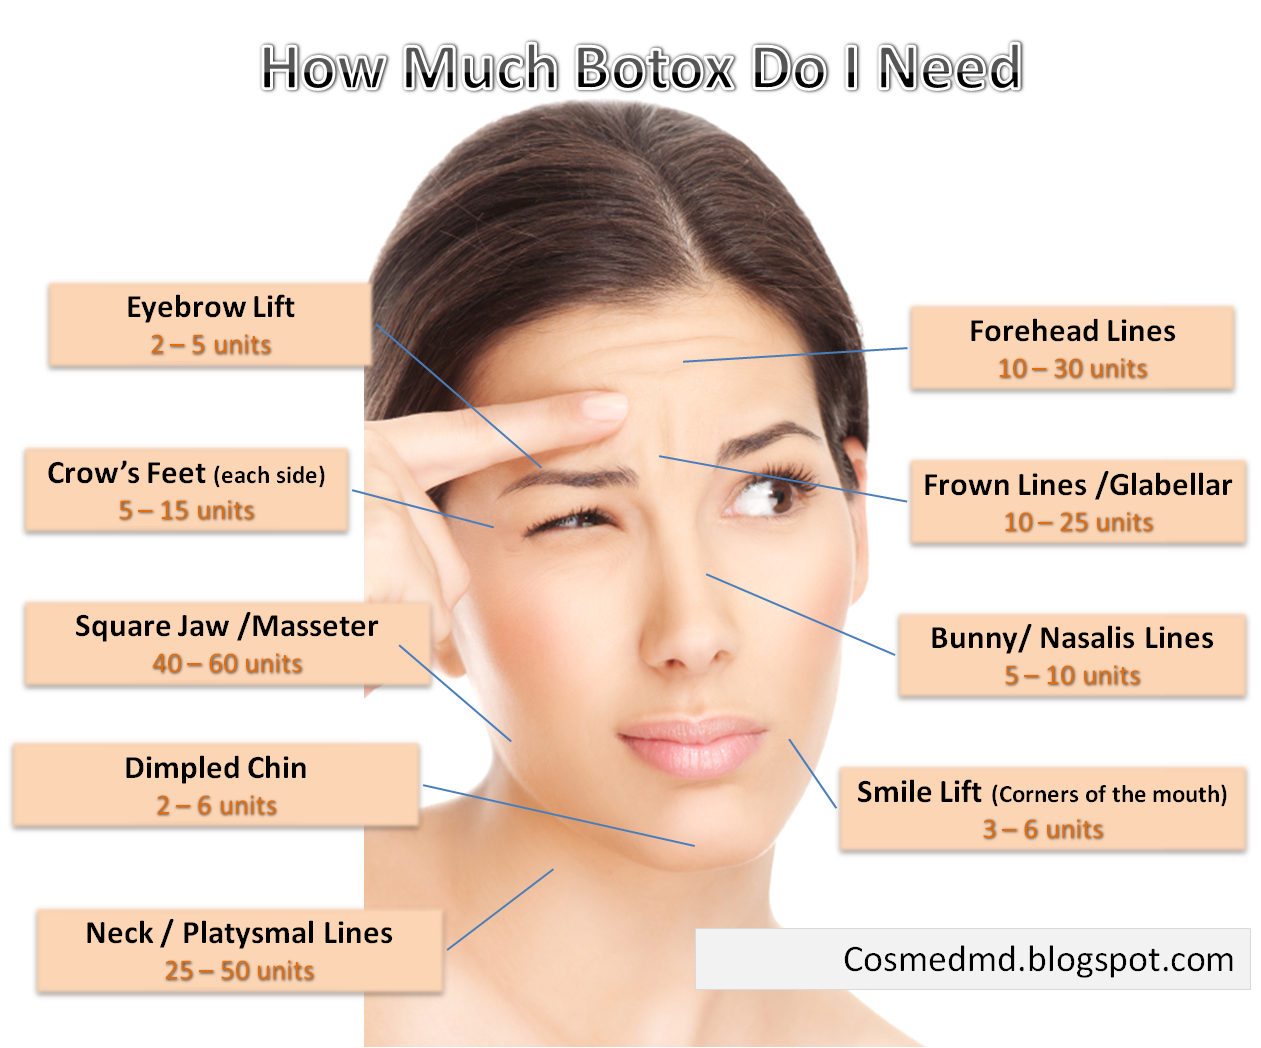 The Amazing Medical Uses of Botox